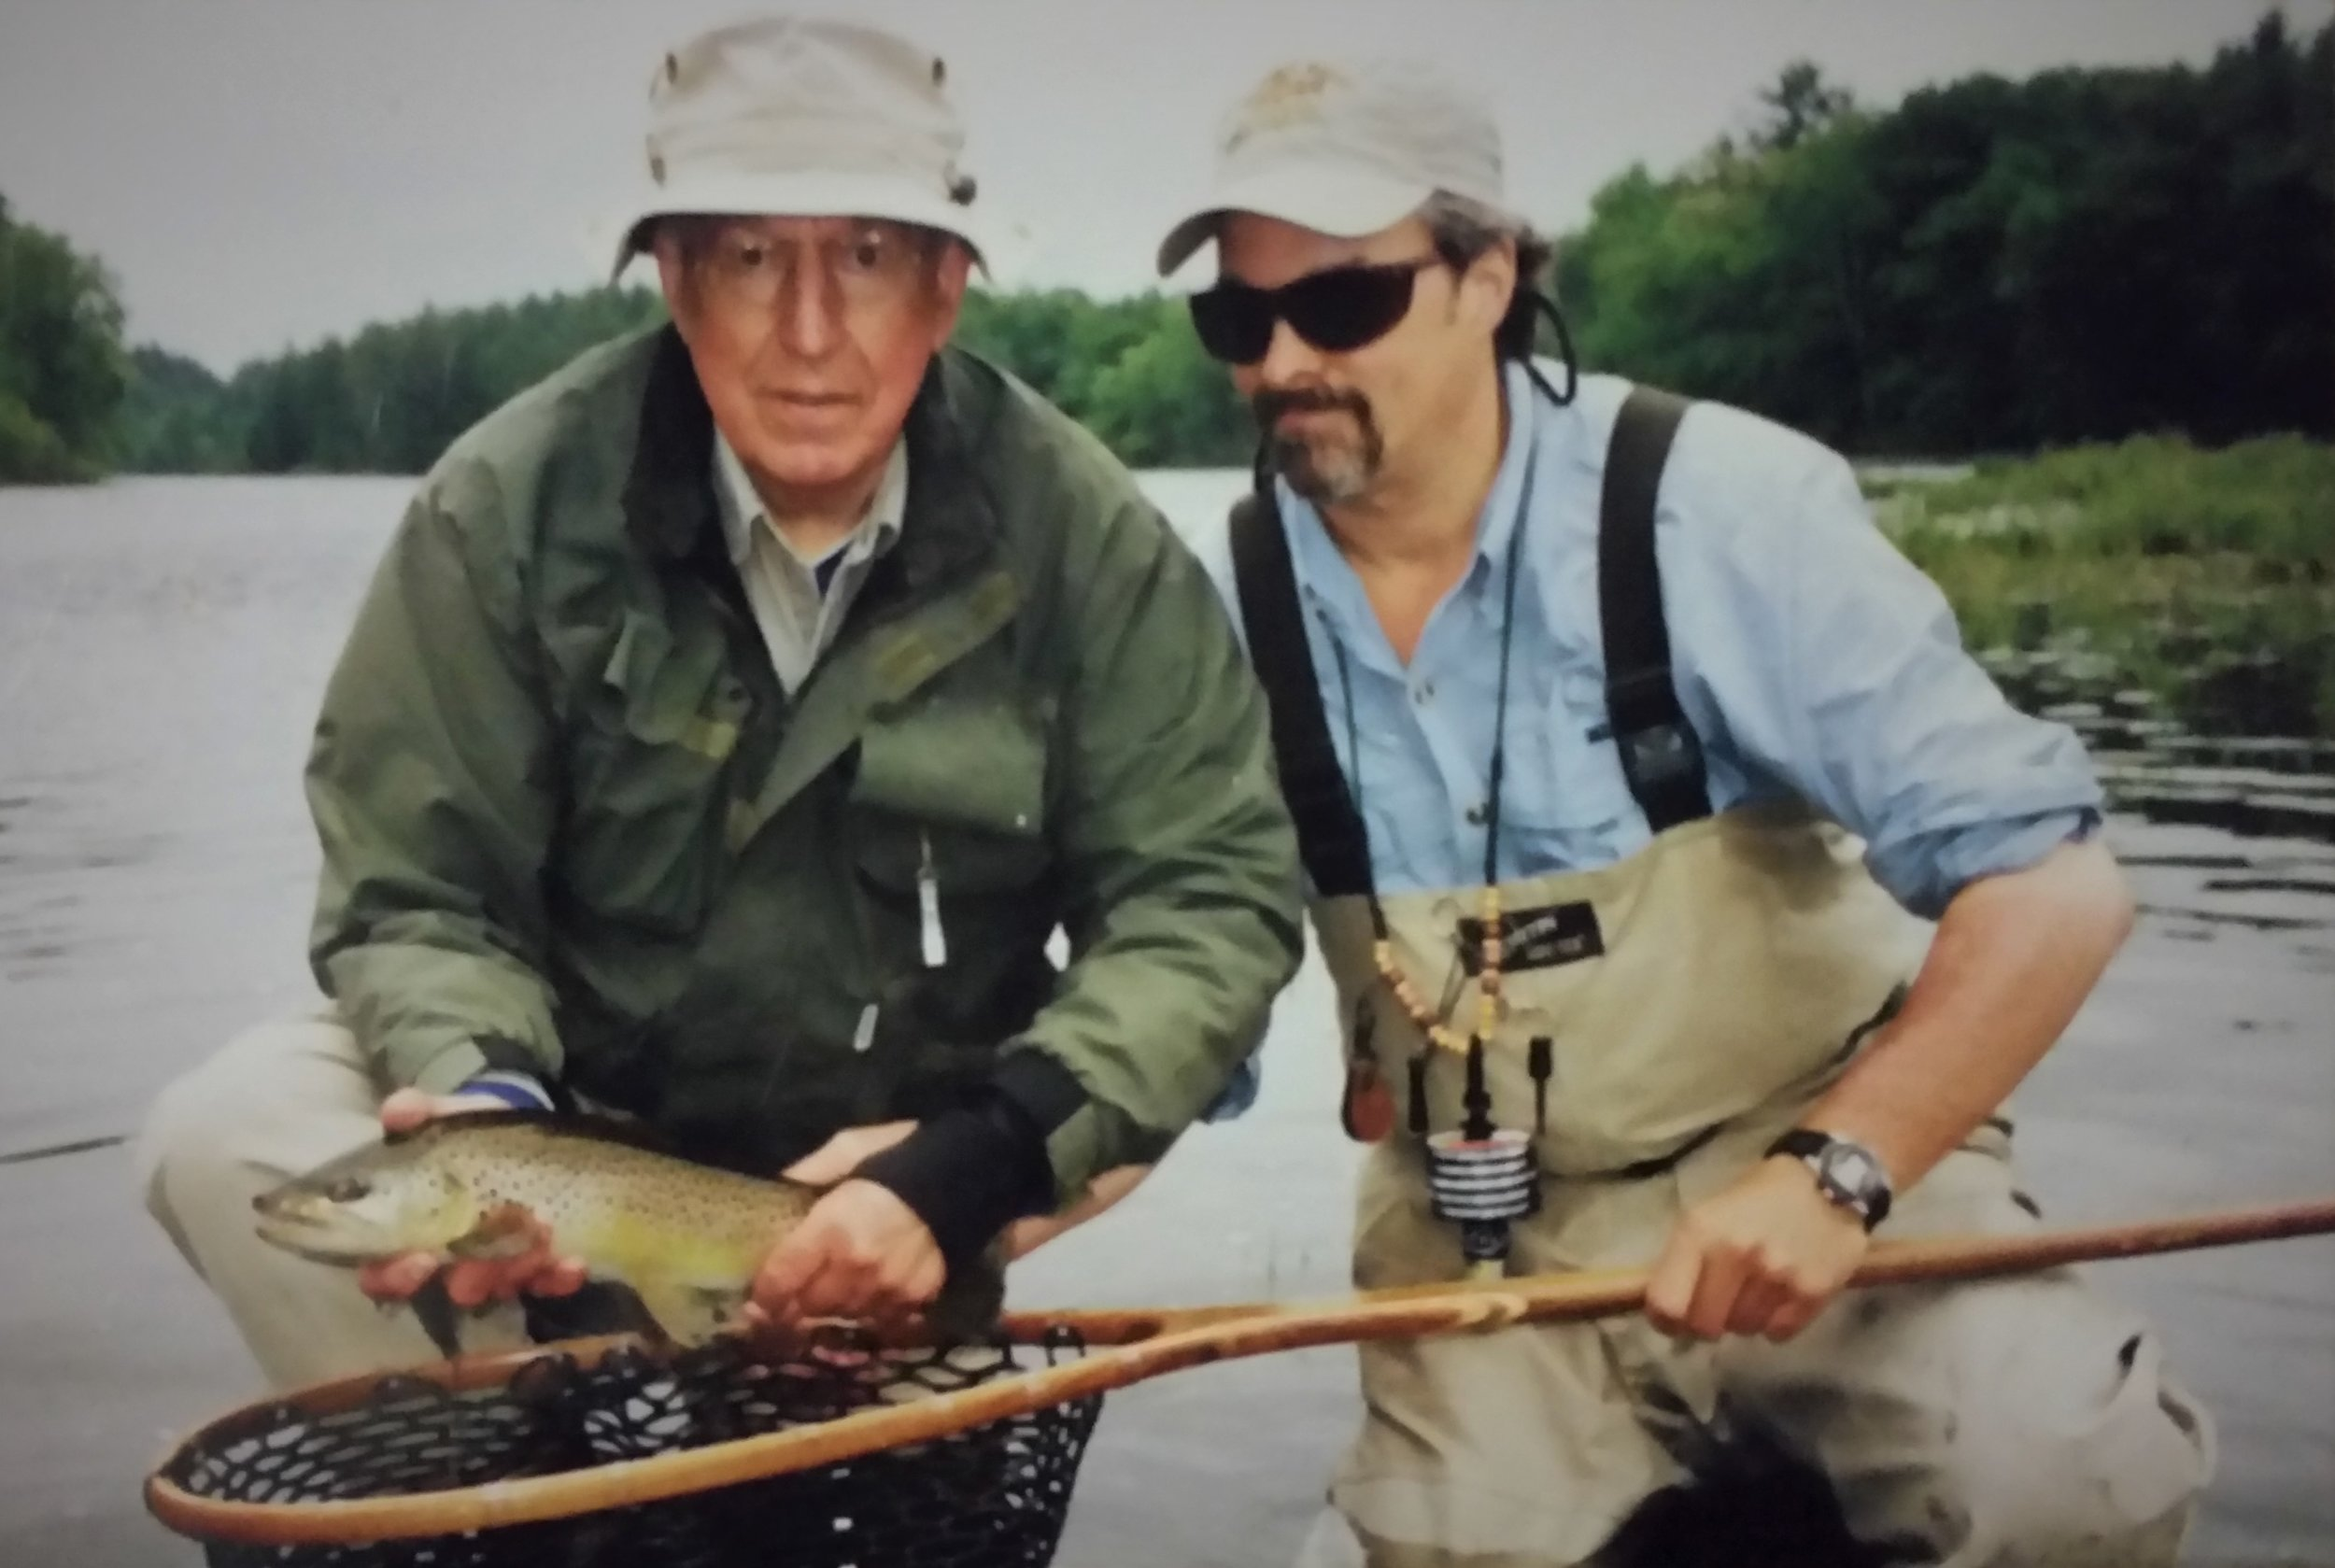 Bill Townsend and NFC founding member, National Vice Chair and Maine board member Bob Mallard on the Kennebec River in Maine.